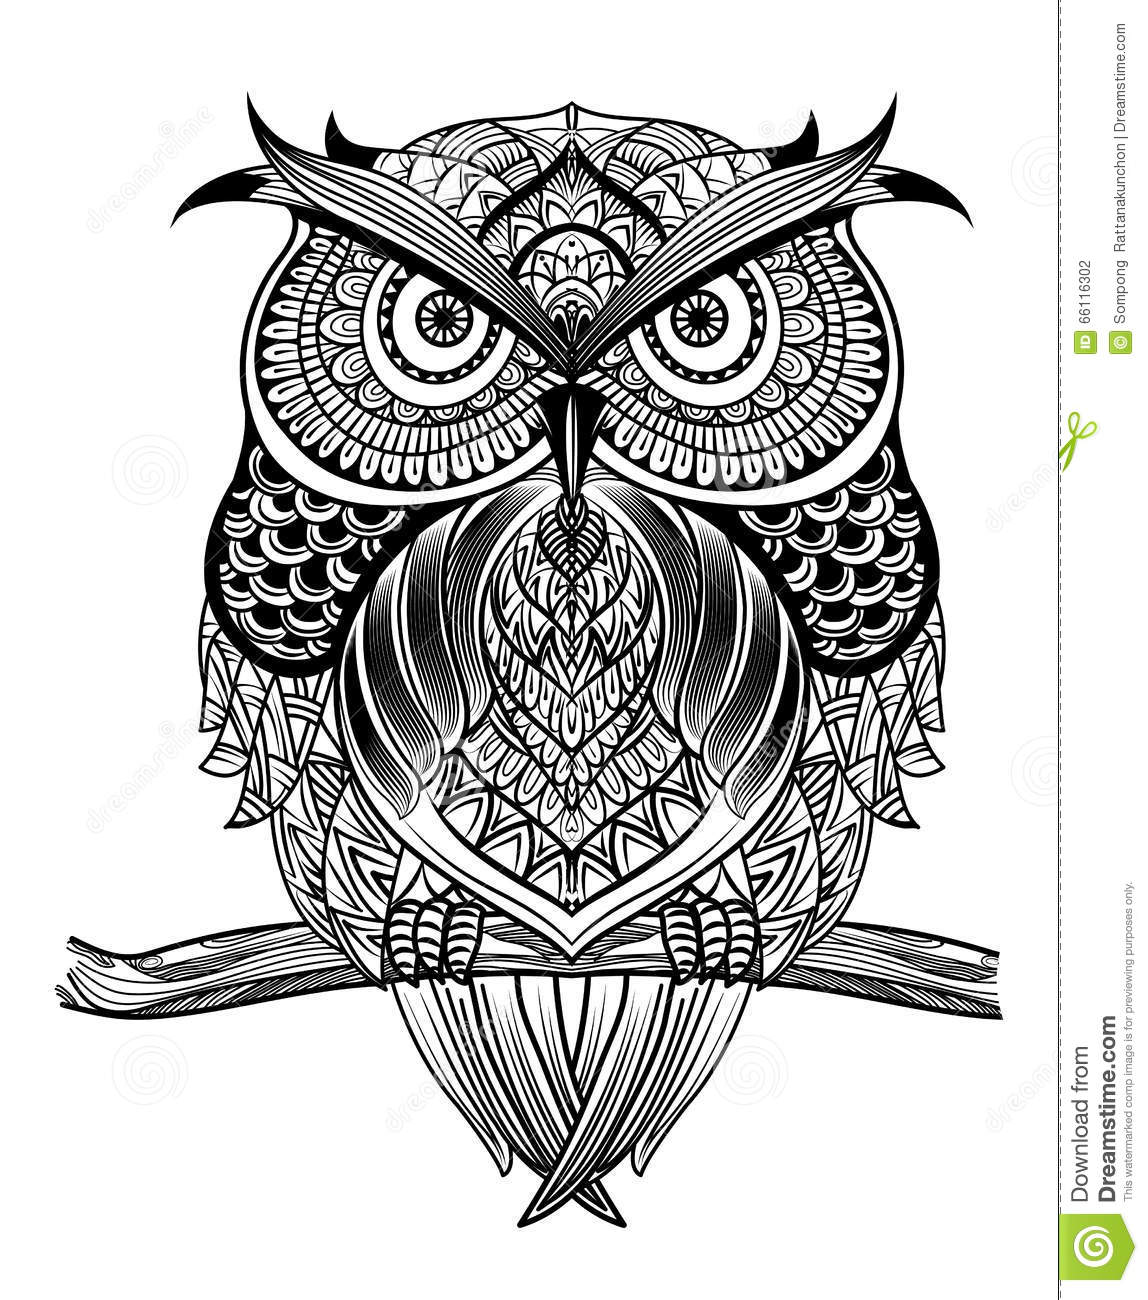 Line And Art : Line art owl stock vector illustration of page